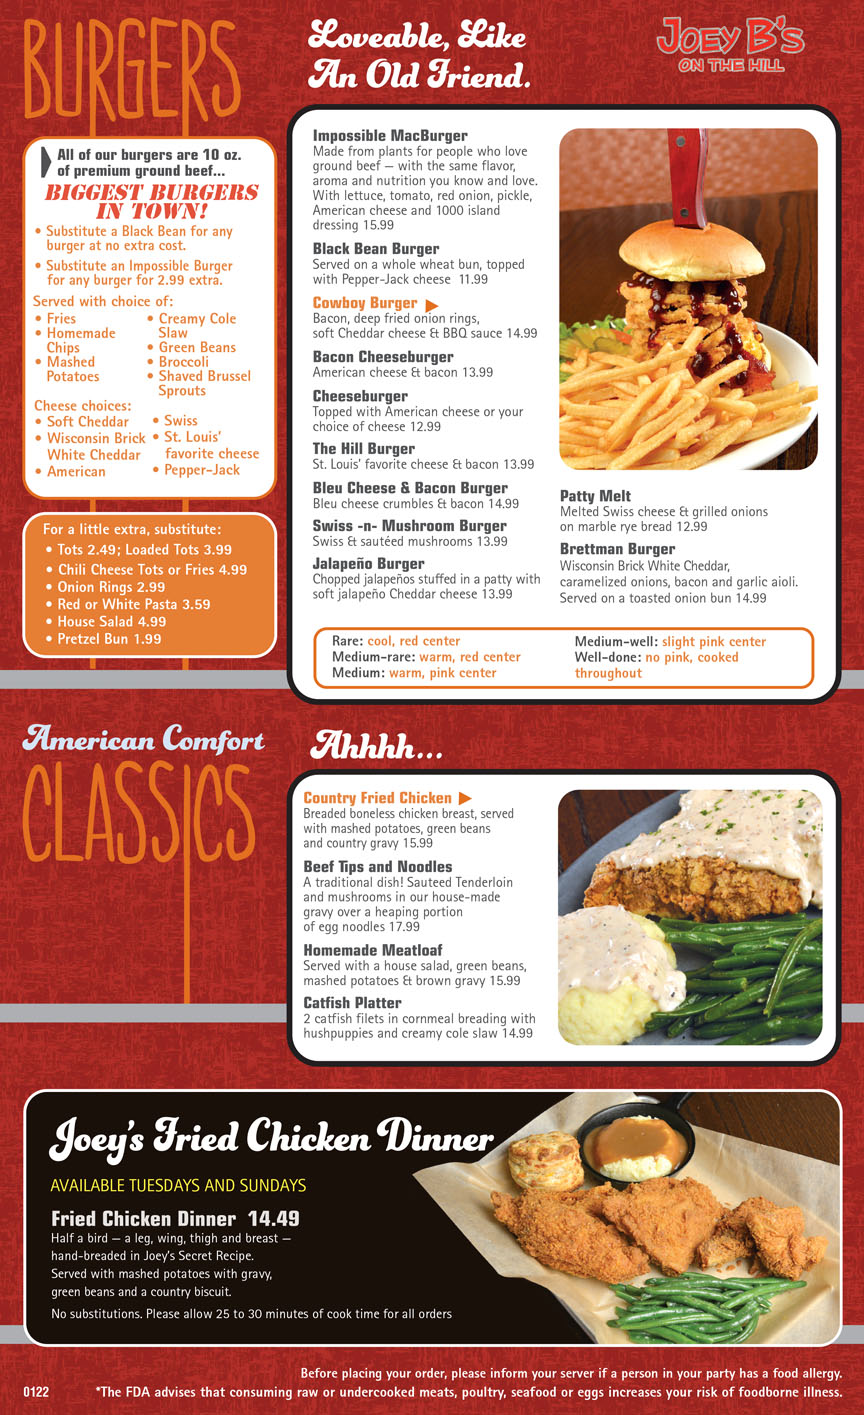 Joey B's on the Hill menu